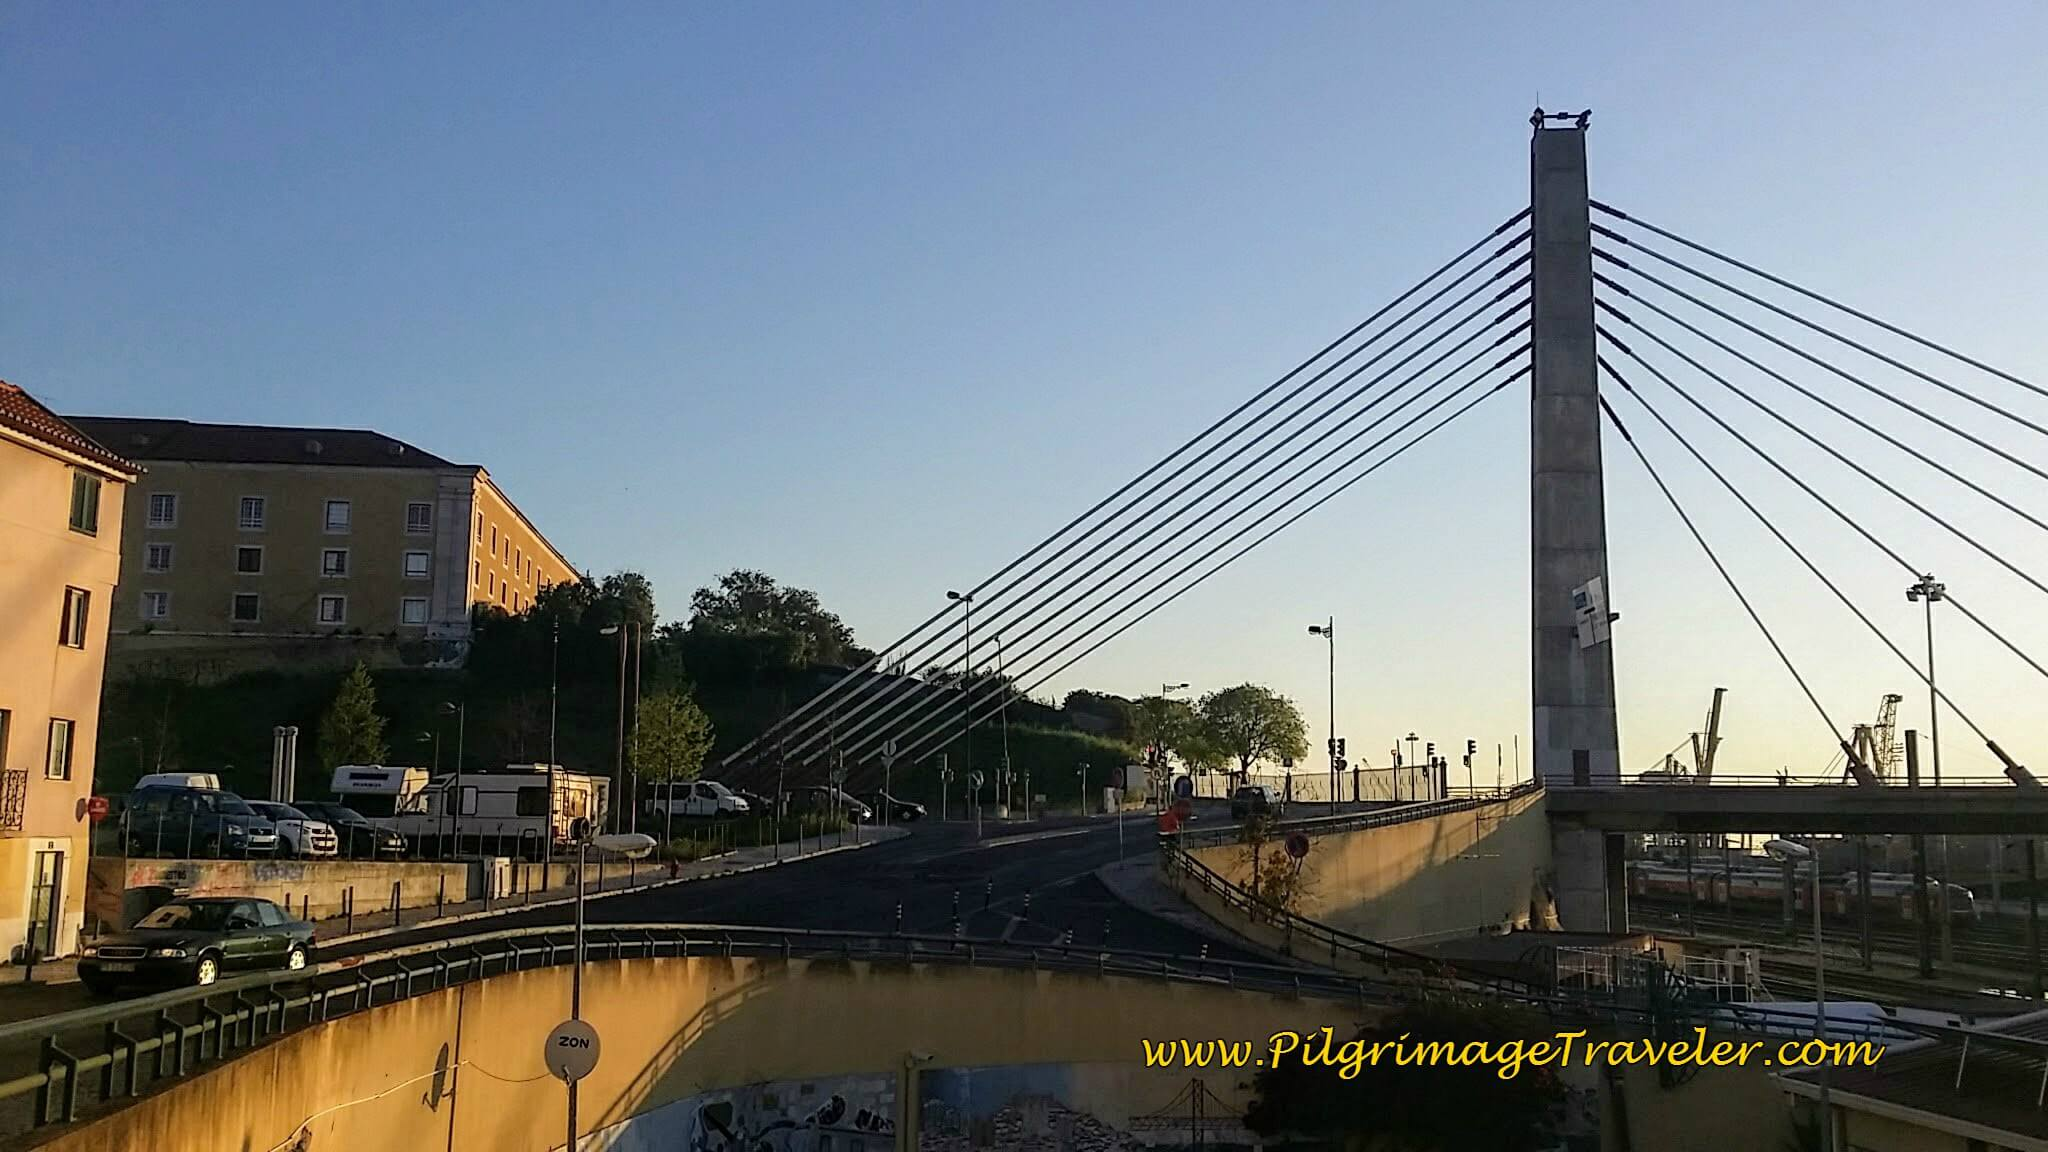 Rua de Santa Apolónia and Bridge after leaving Lisbon on the first day of the Camino Portugués